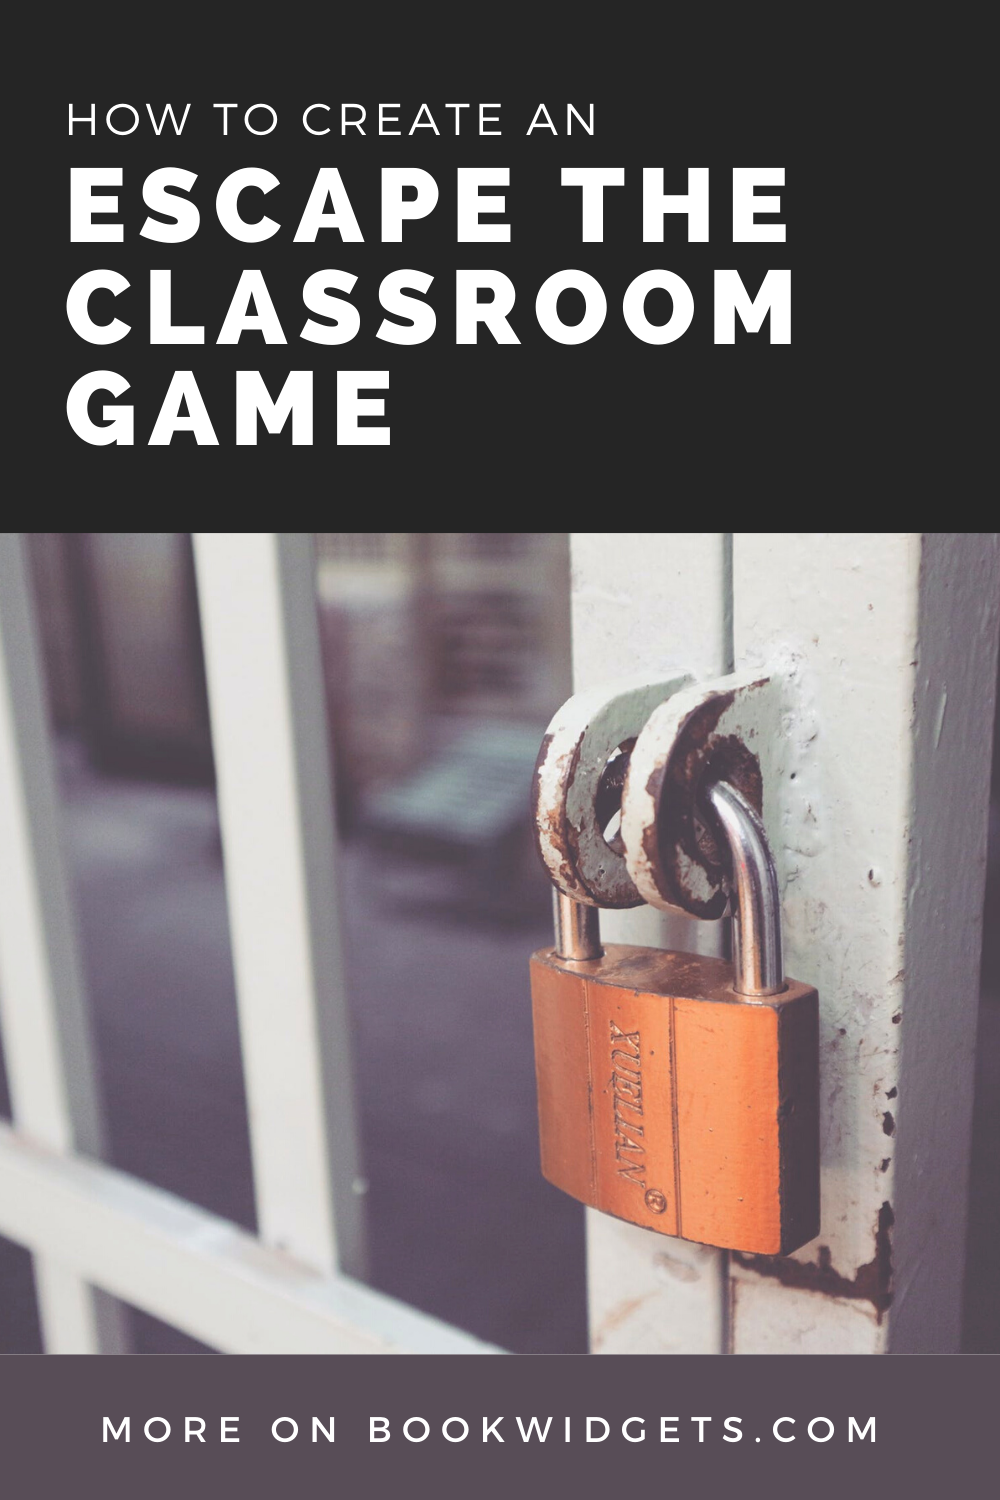 How to create an escape the classroom game